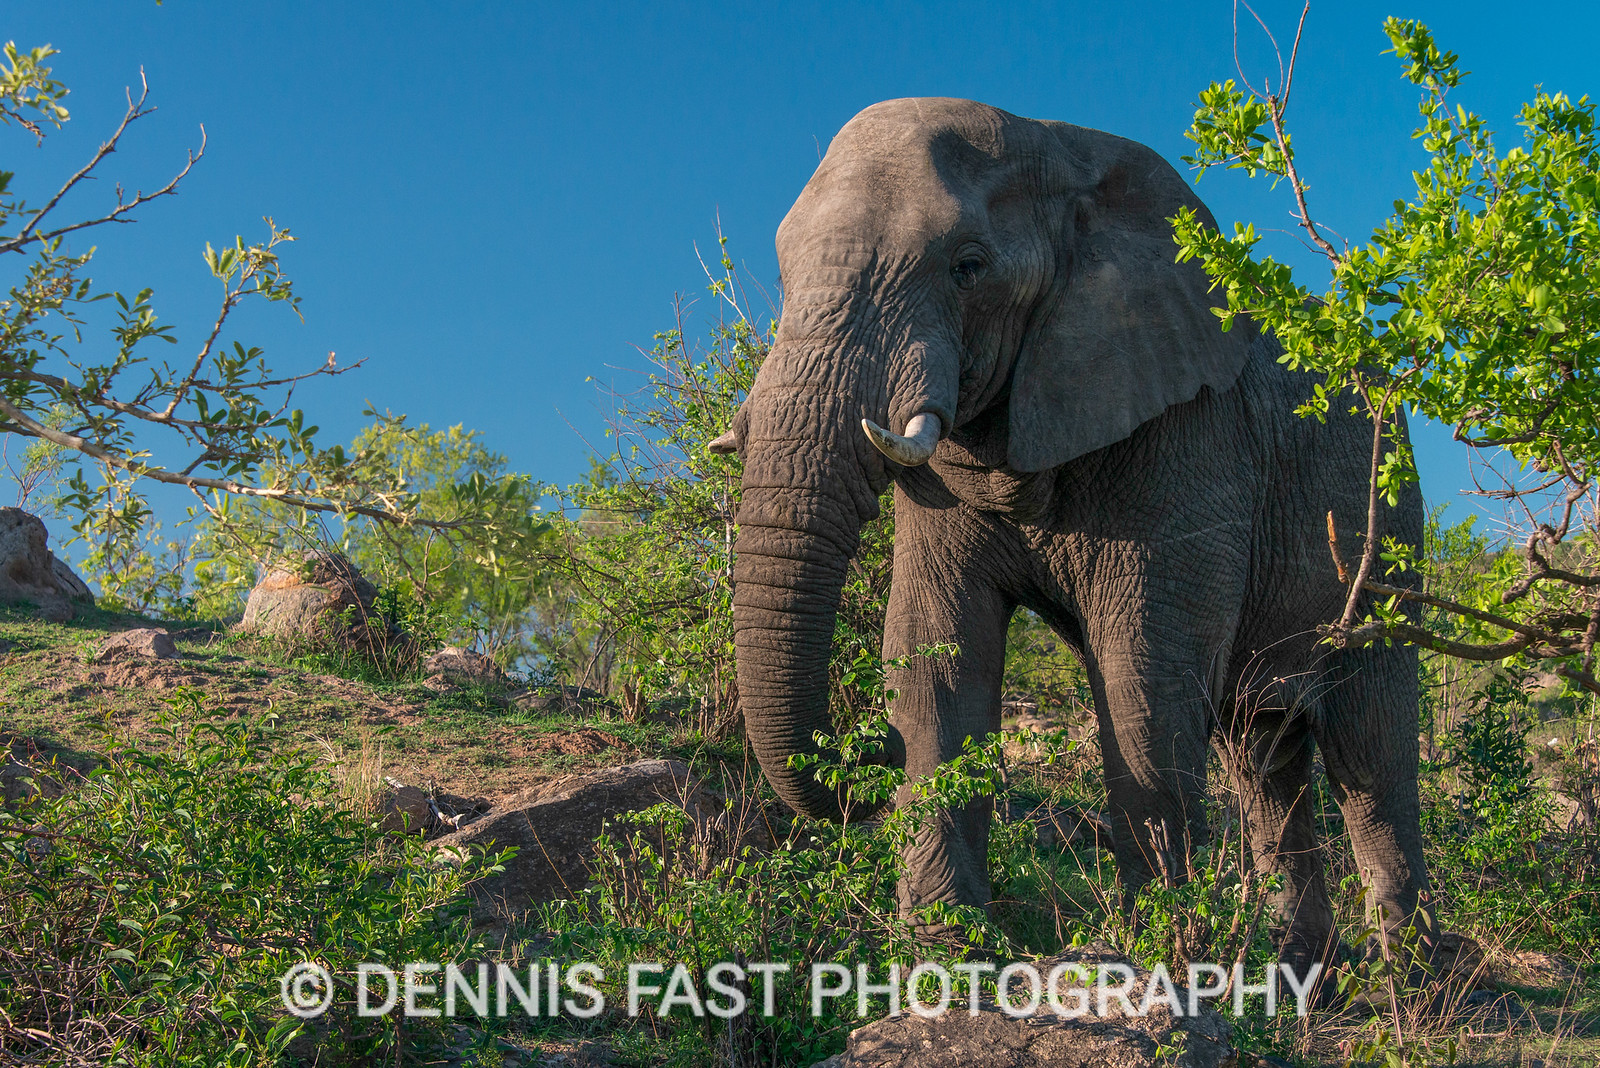 African Elephant (Loxodonta africana) in Kruger National Park, South Africa